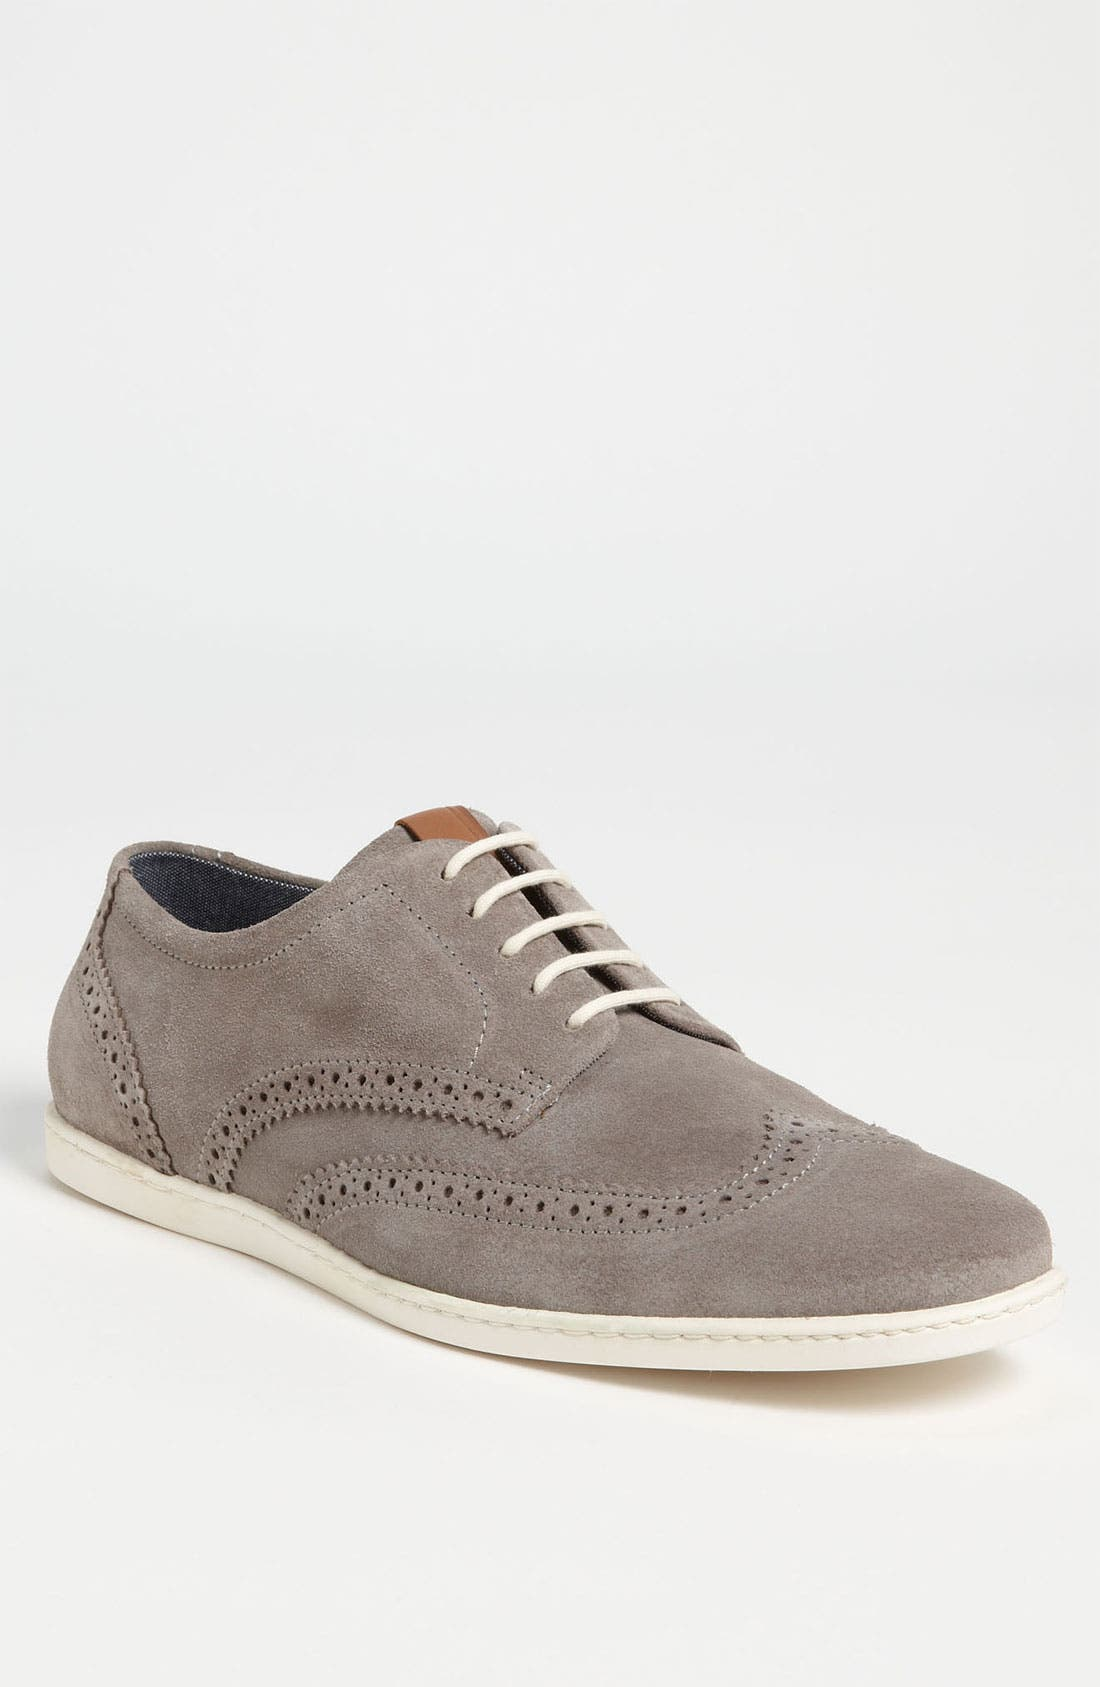 Alternate Image 1 Selected - Fred Perry 'Jacobs' Wingtip